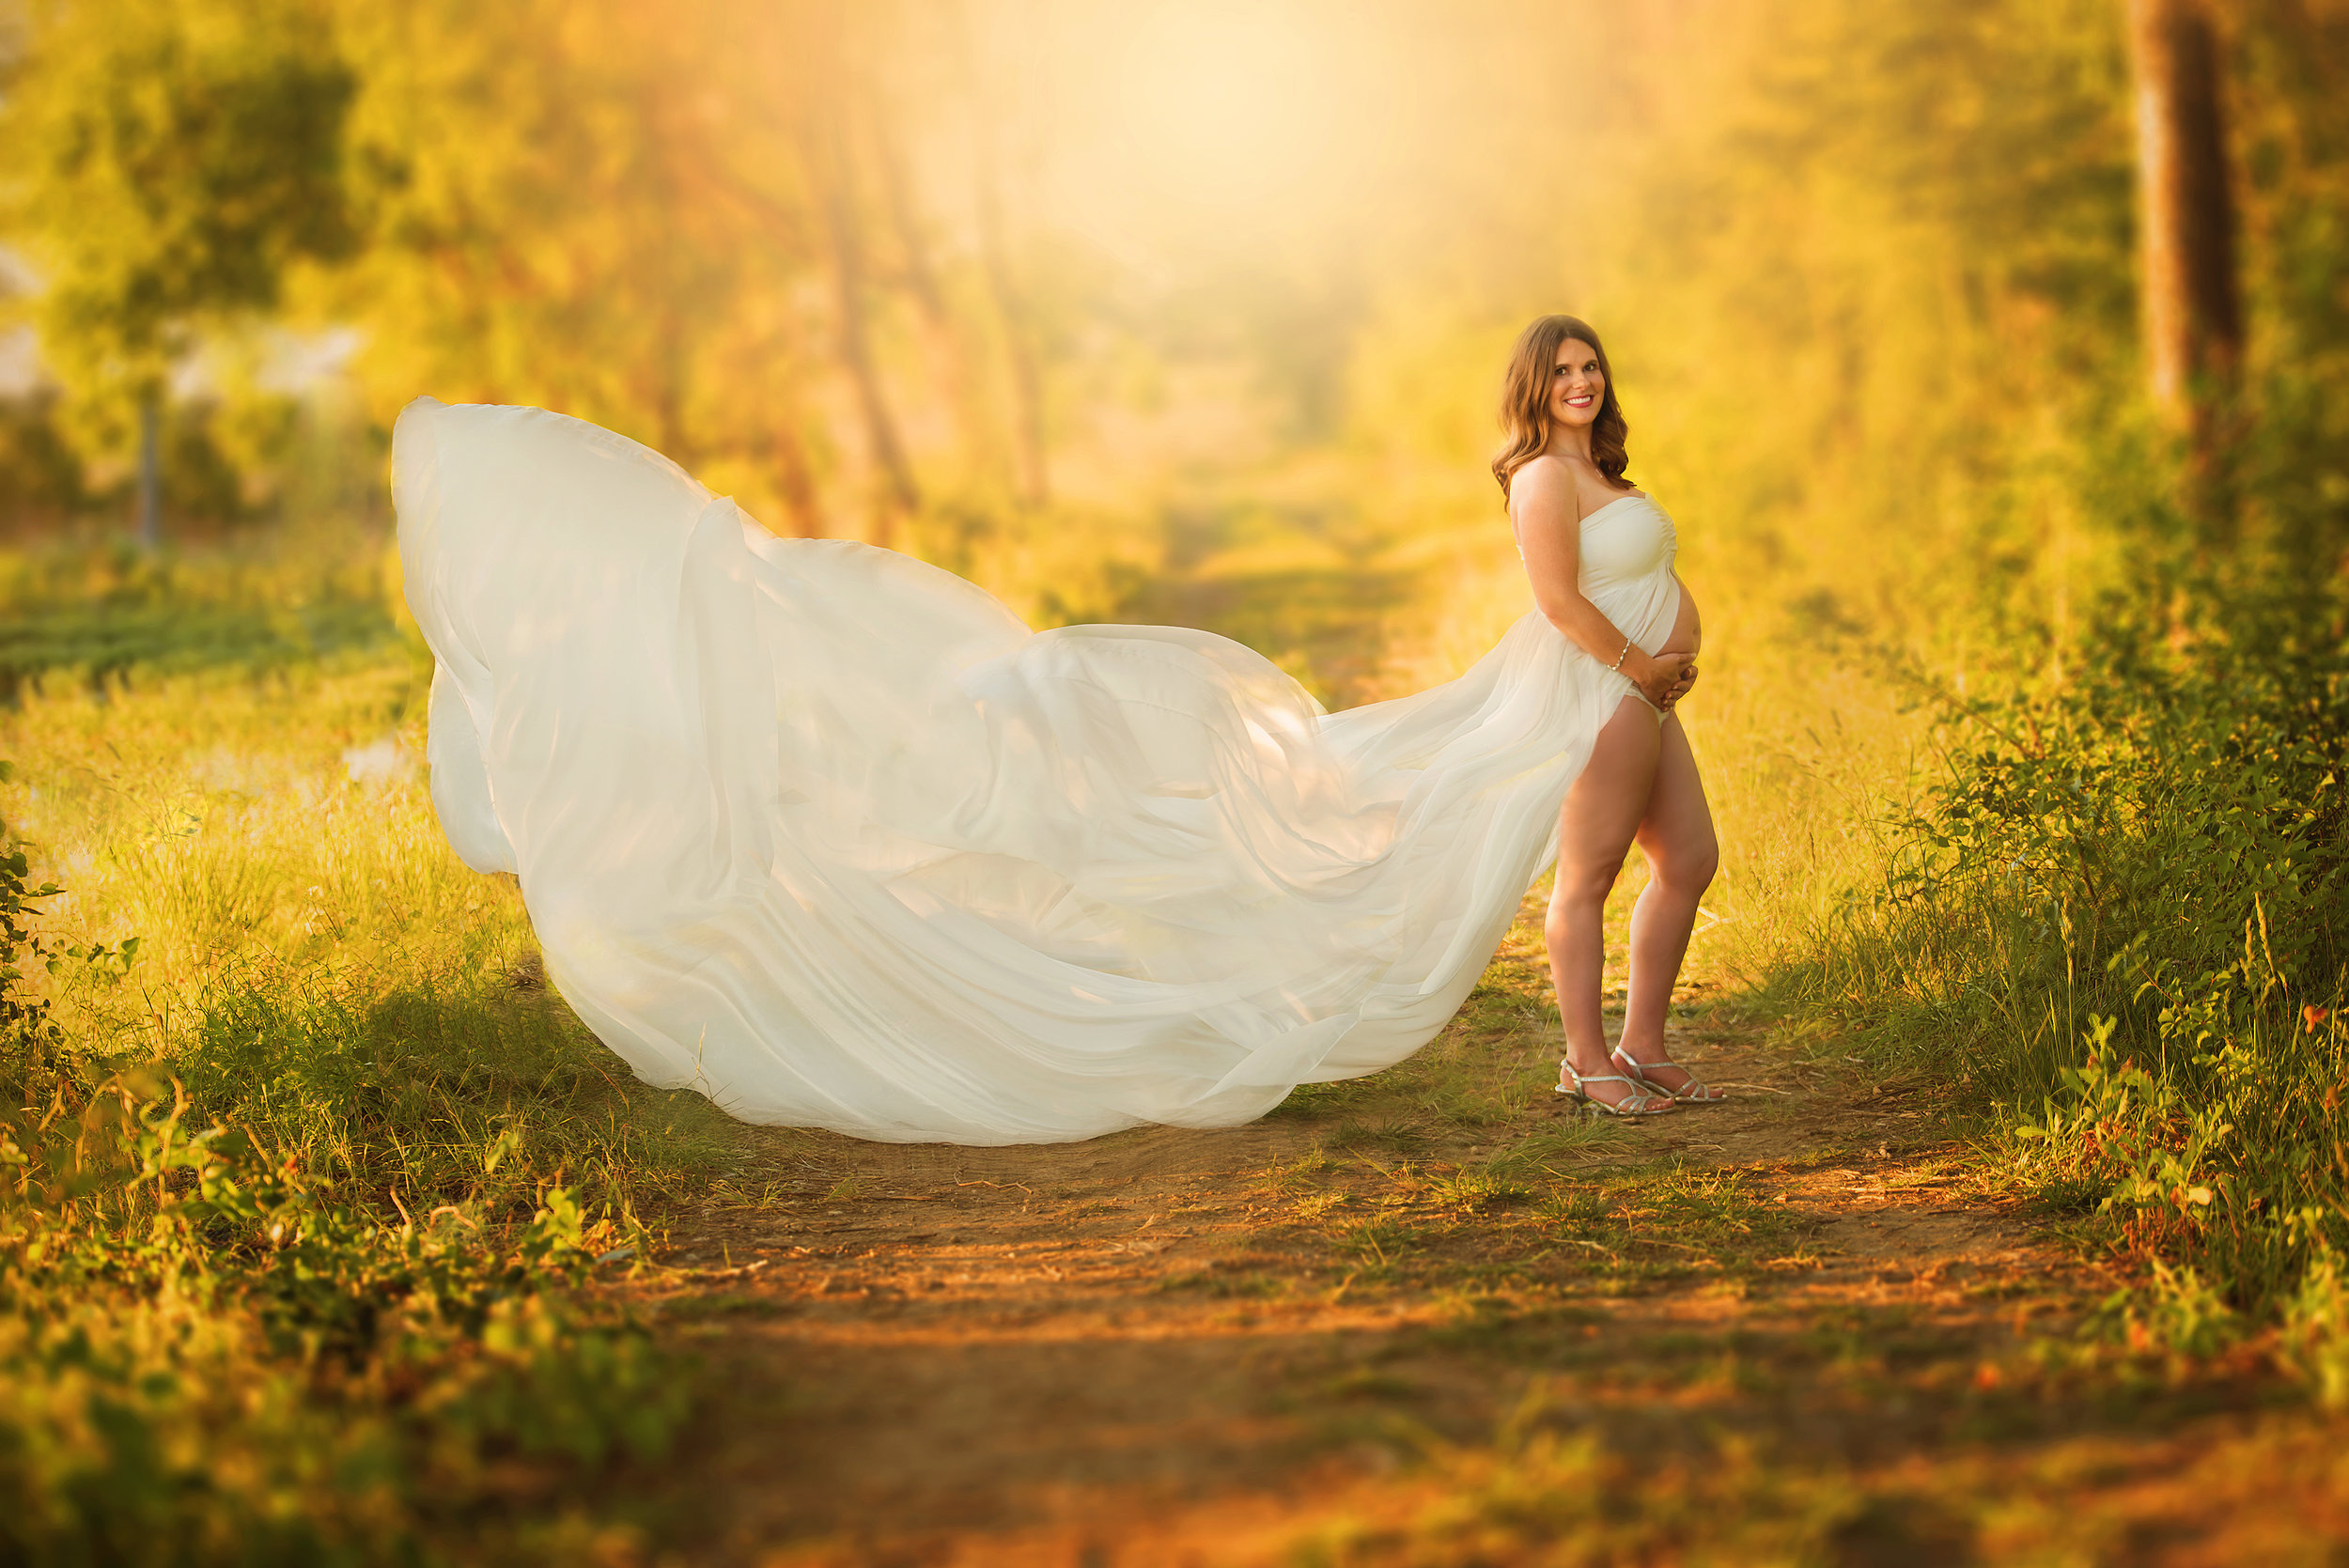 reina-legrand-photography-photographer-maternity-baby-haslet-colleyville-fort-worth-dallas-dfw-westlake-southlake-grapevine-D3.jpg